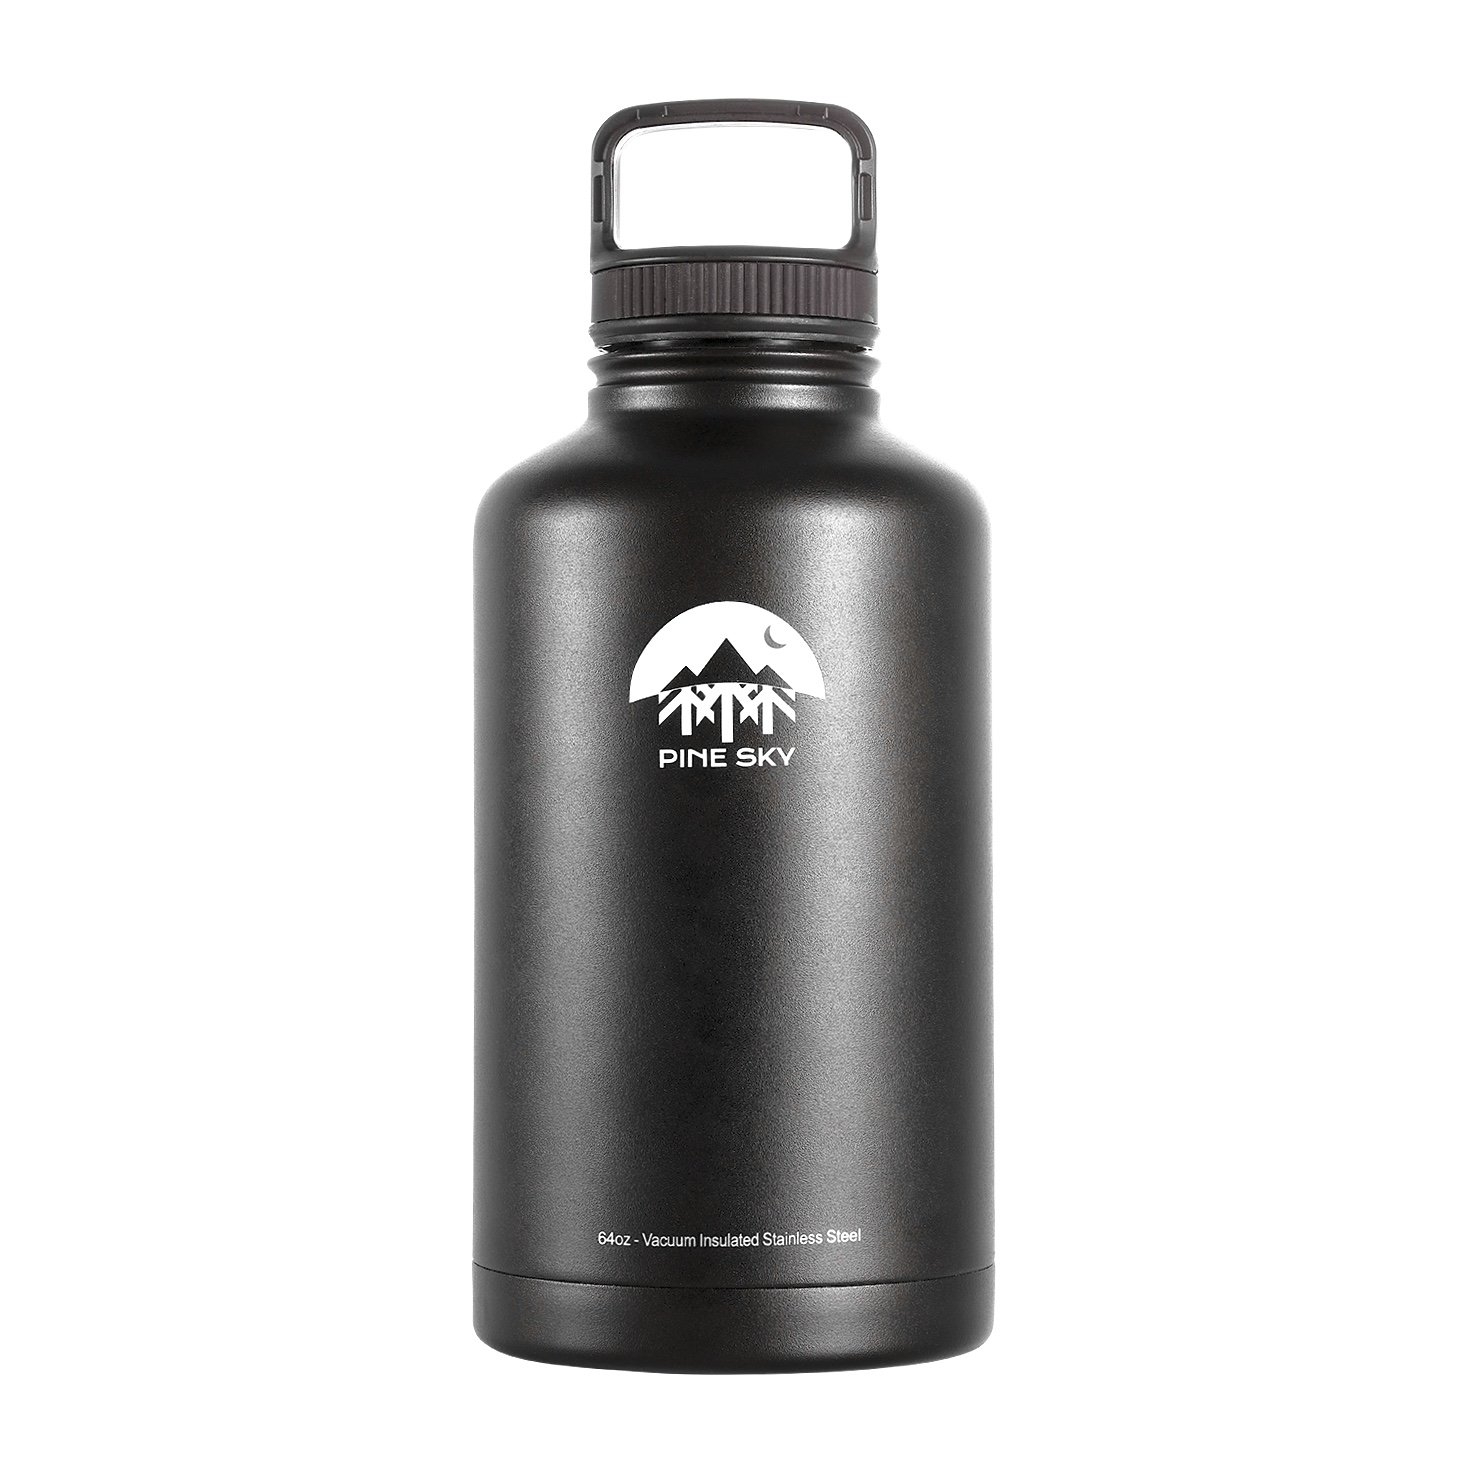 64oz Stainless Steel Growler and Vacuum Insulated Wide Mouth Water Bottle by Pine Sky - 2 Lid Package, Black PINESKYGR